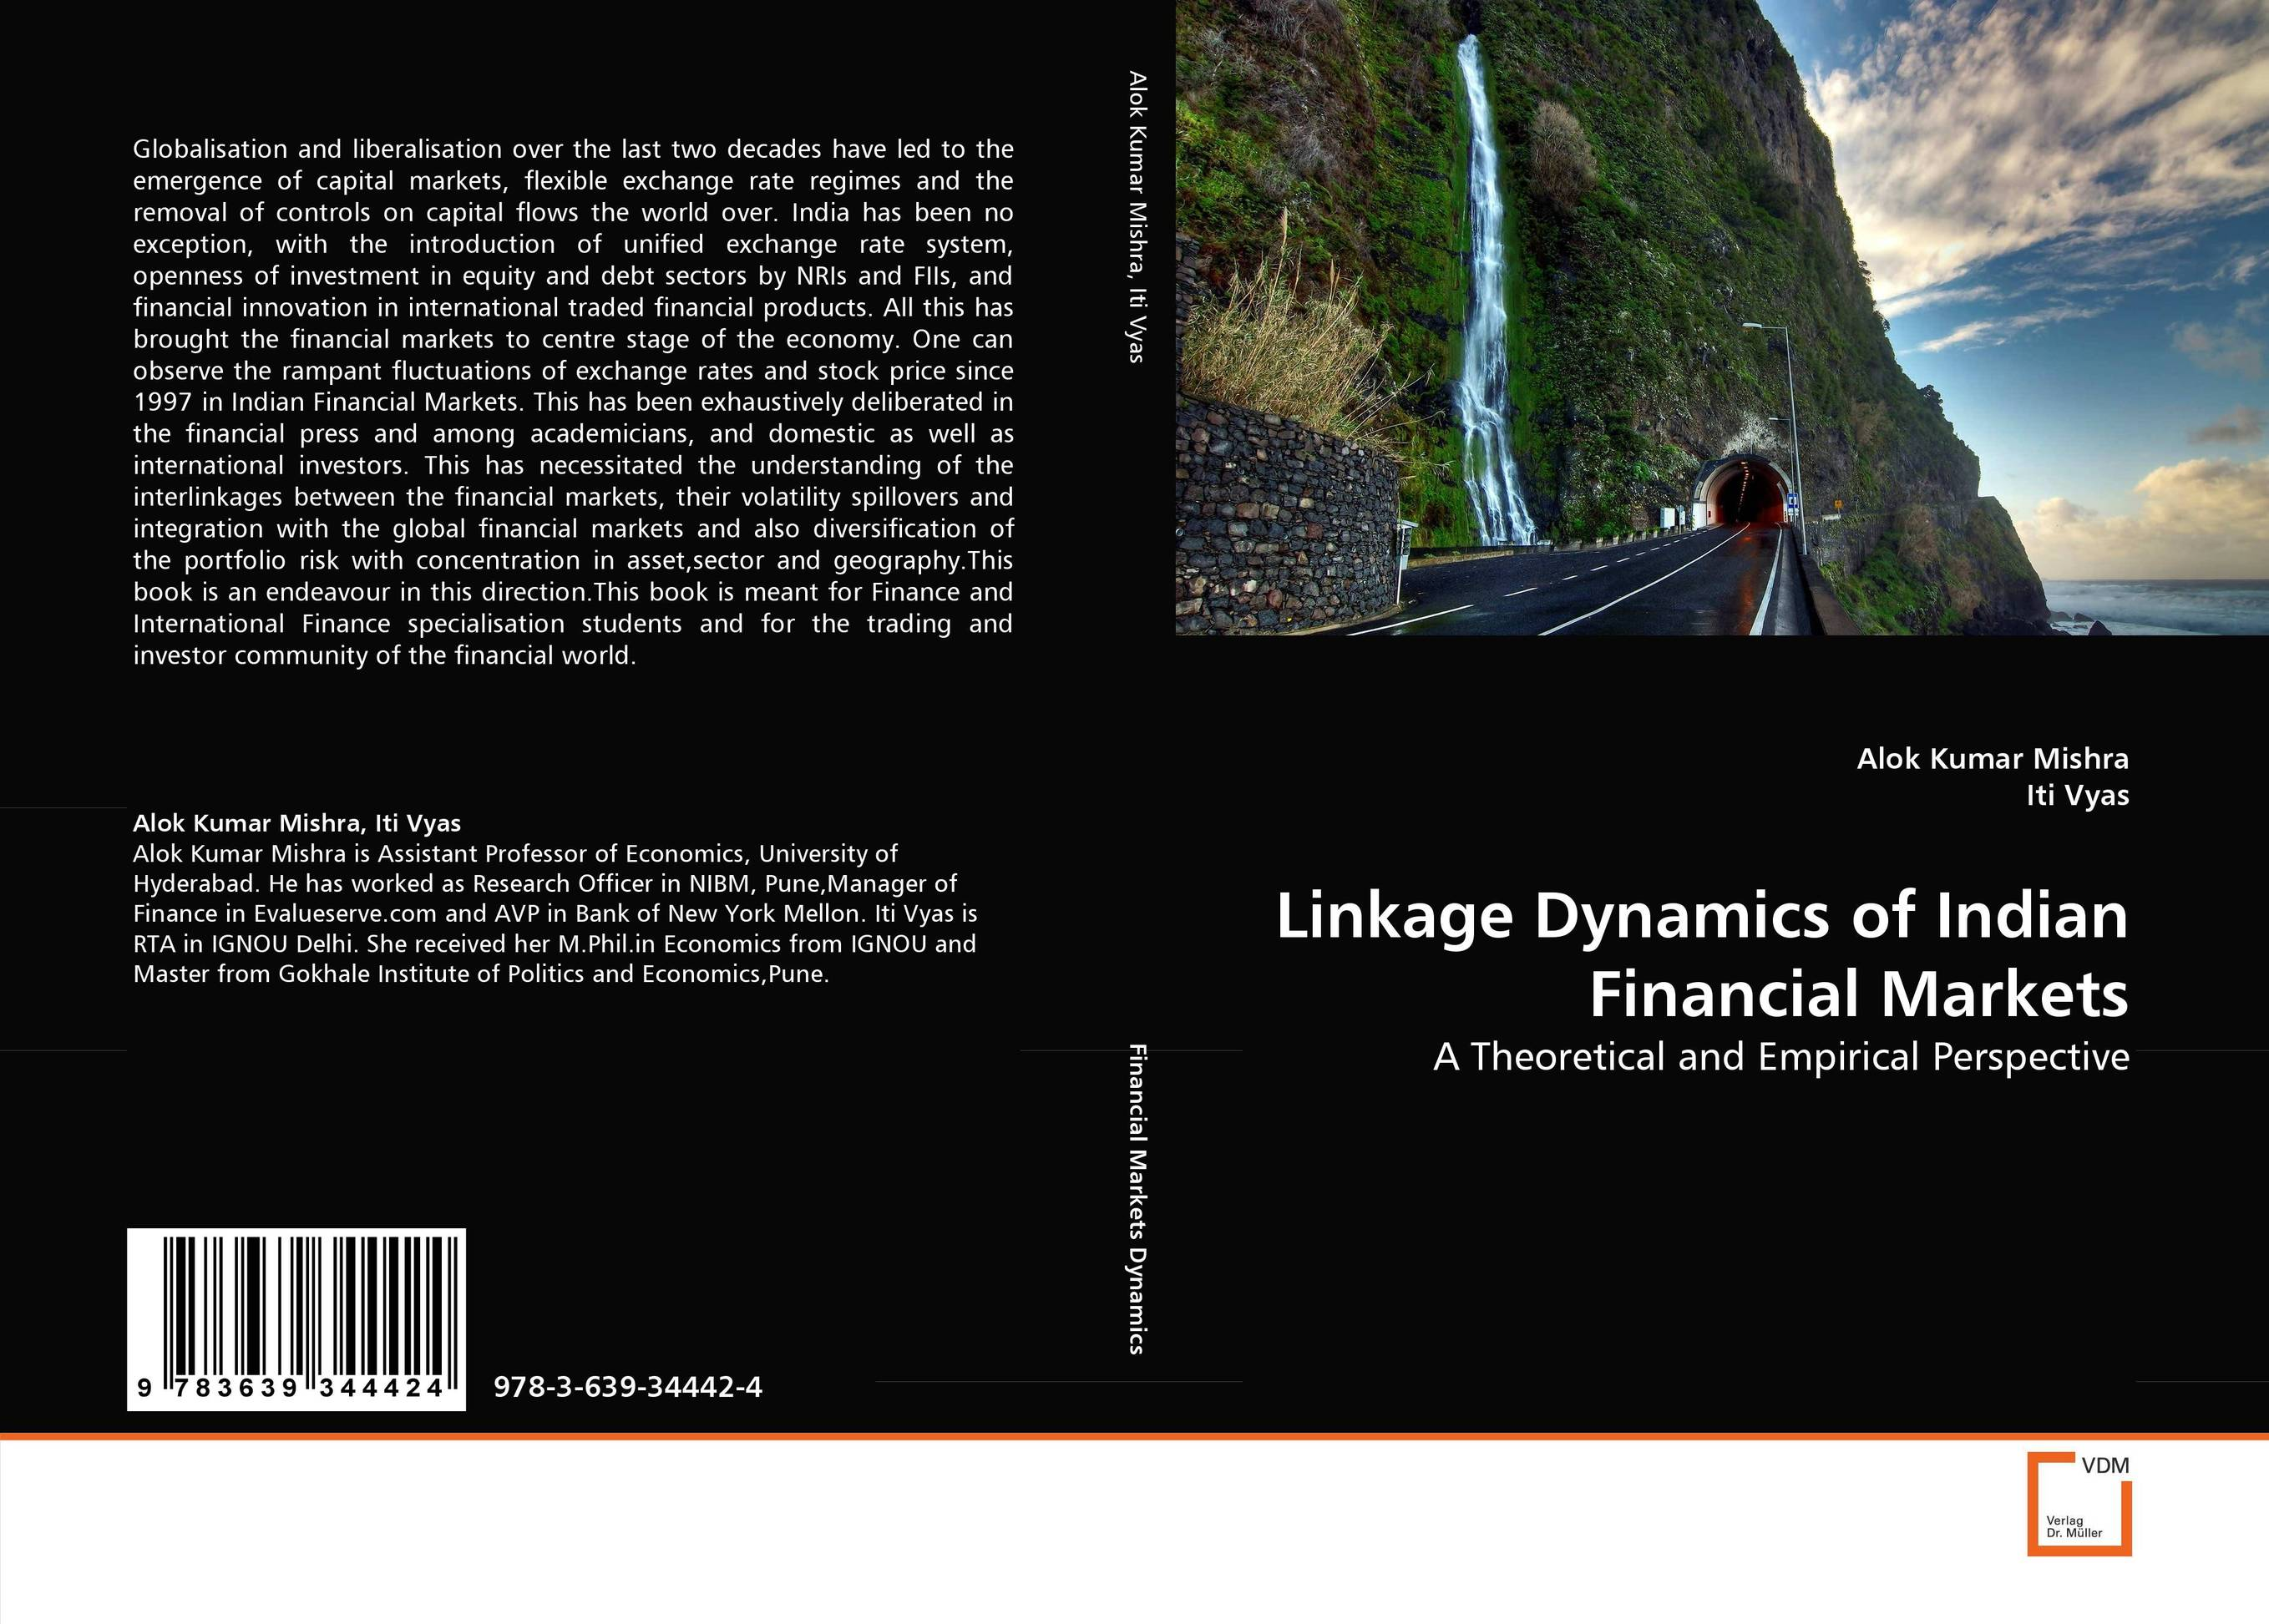 Linkage Dynamics of Indian Financial Markets powers inside the financial futures markets